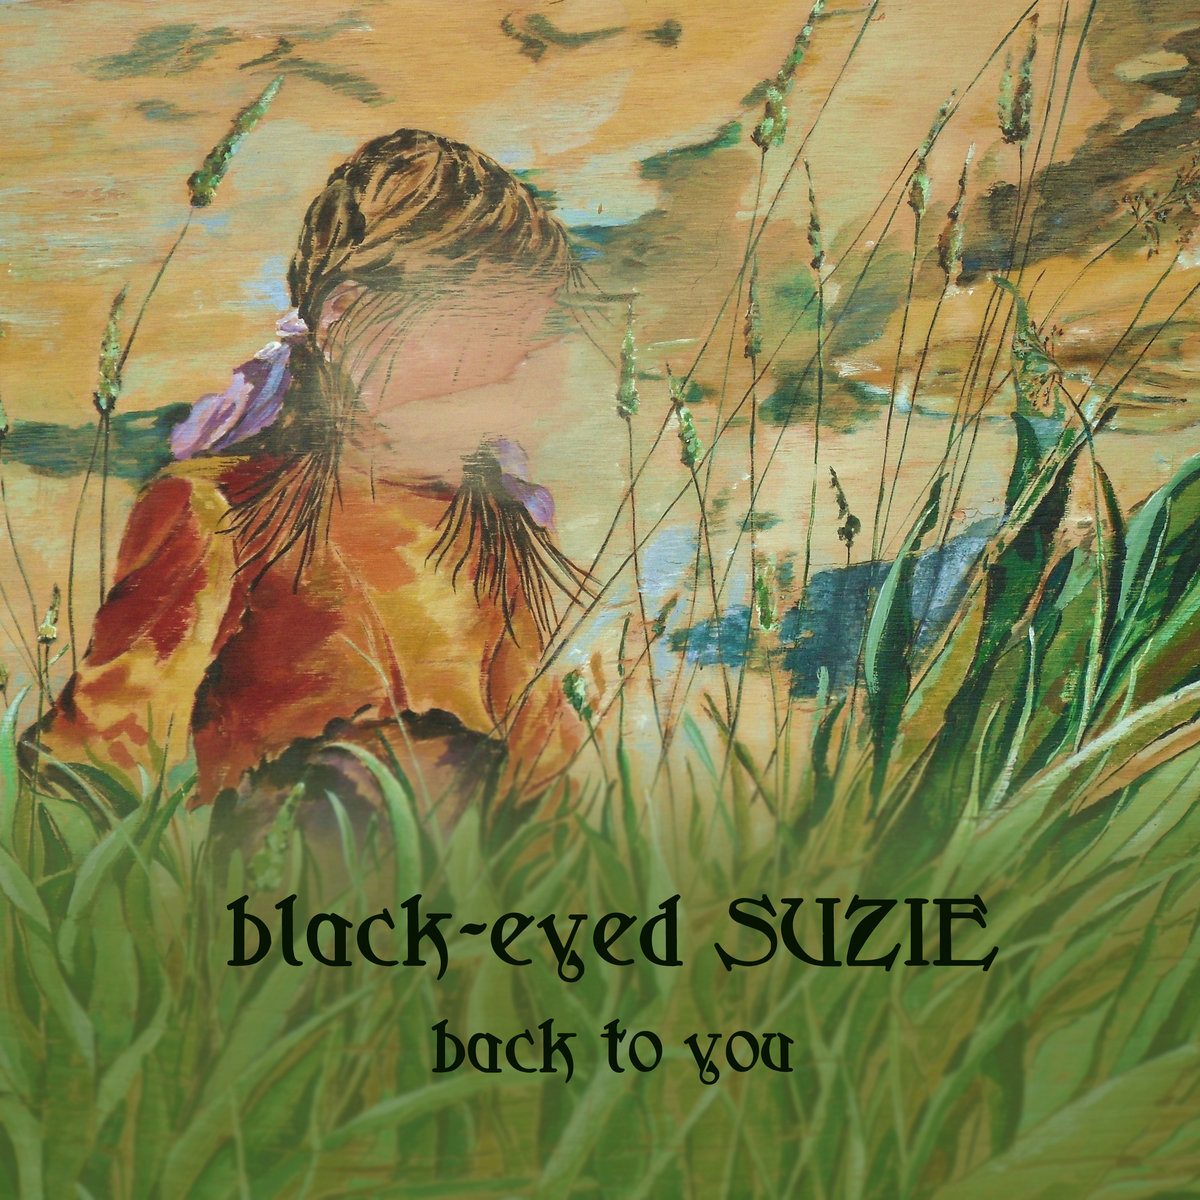 Back To You by black-eyed SUZIE